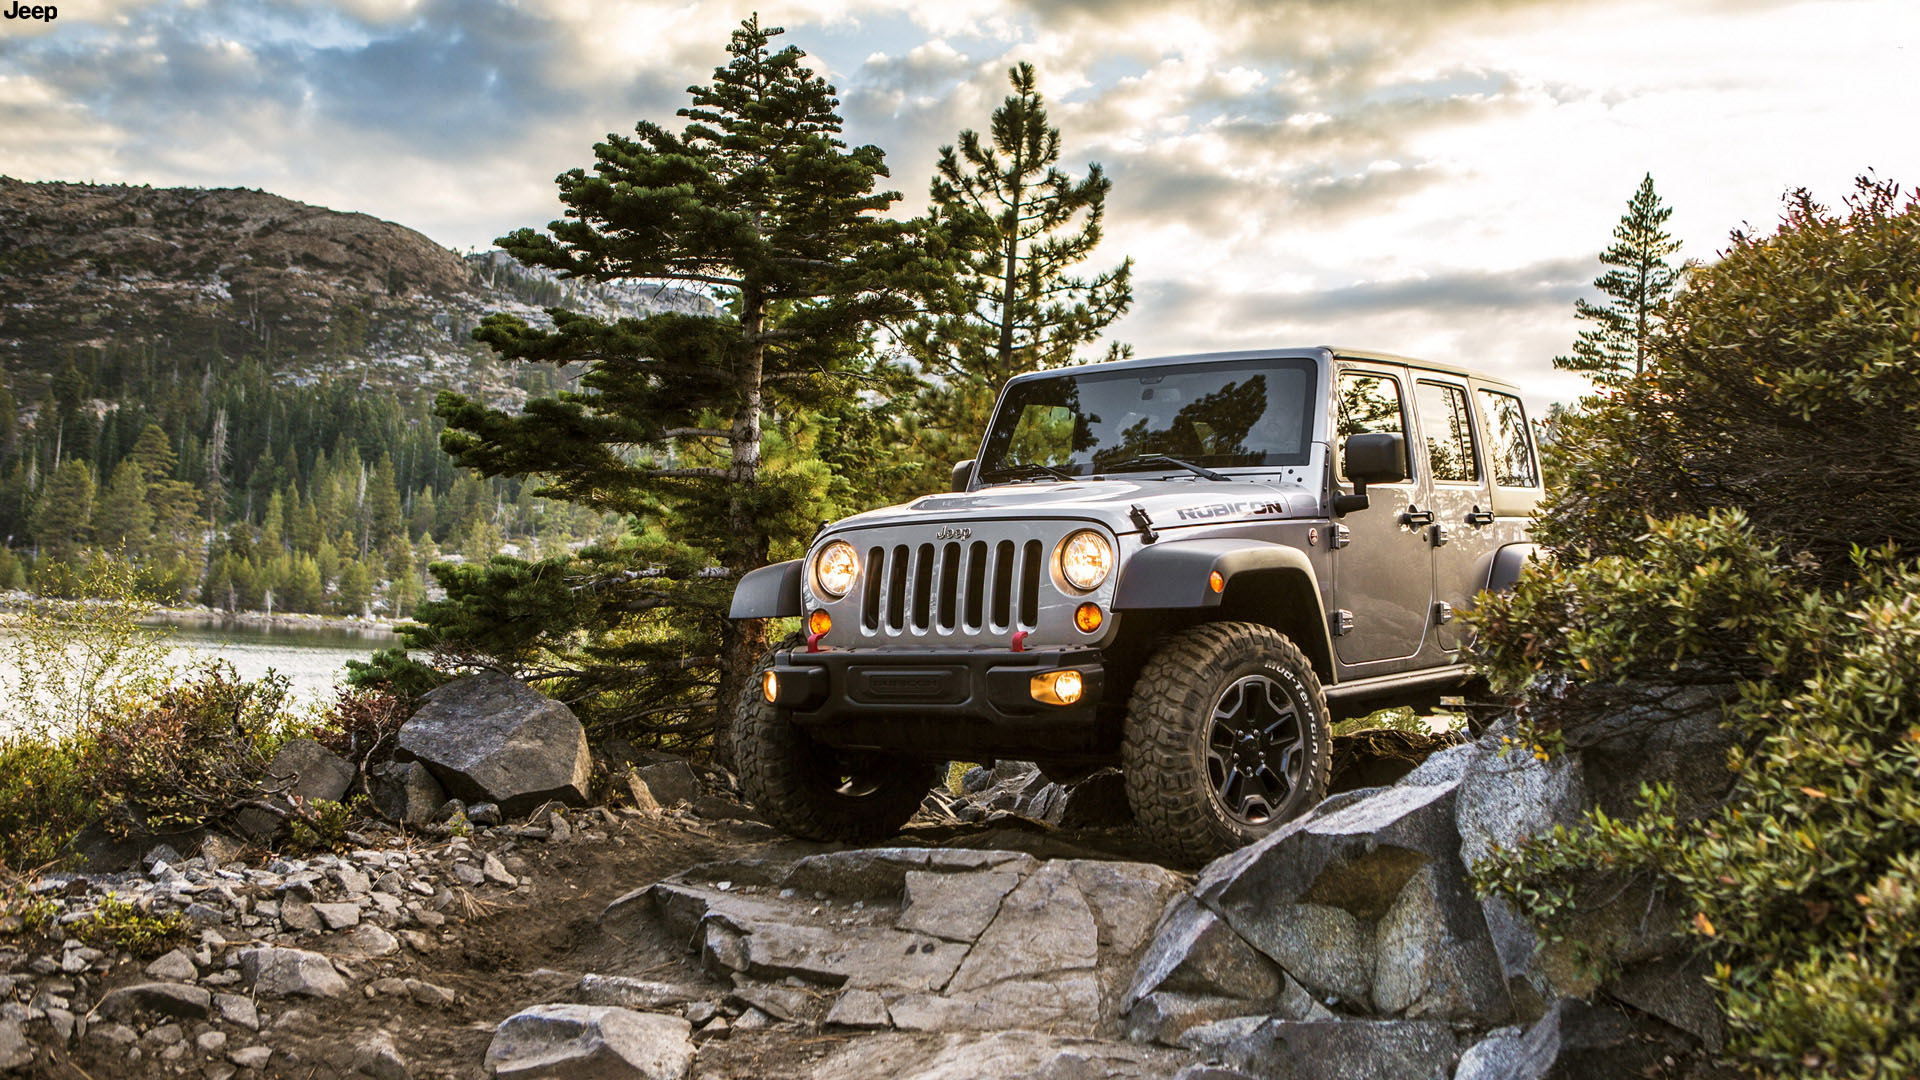 Jeep Hd Wallpapers With Resolutions 19201080 Pixel 1920x1080